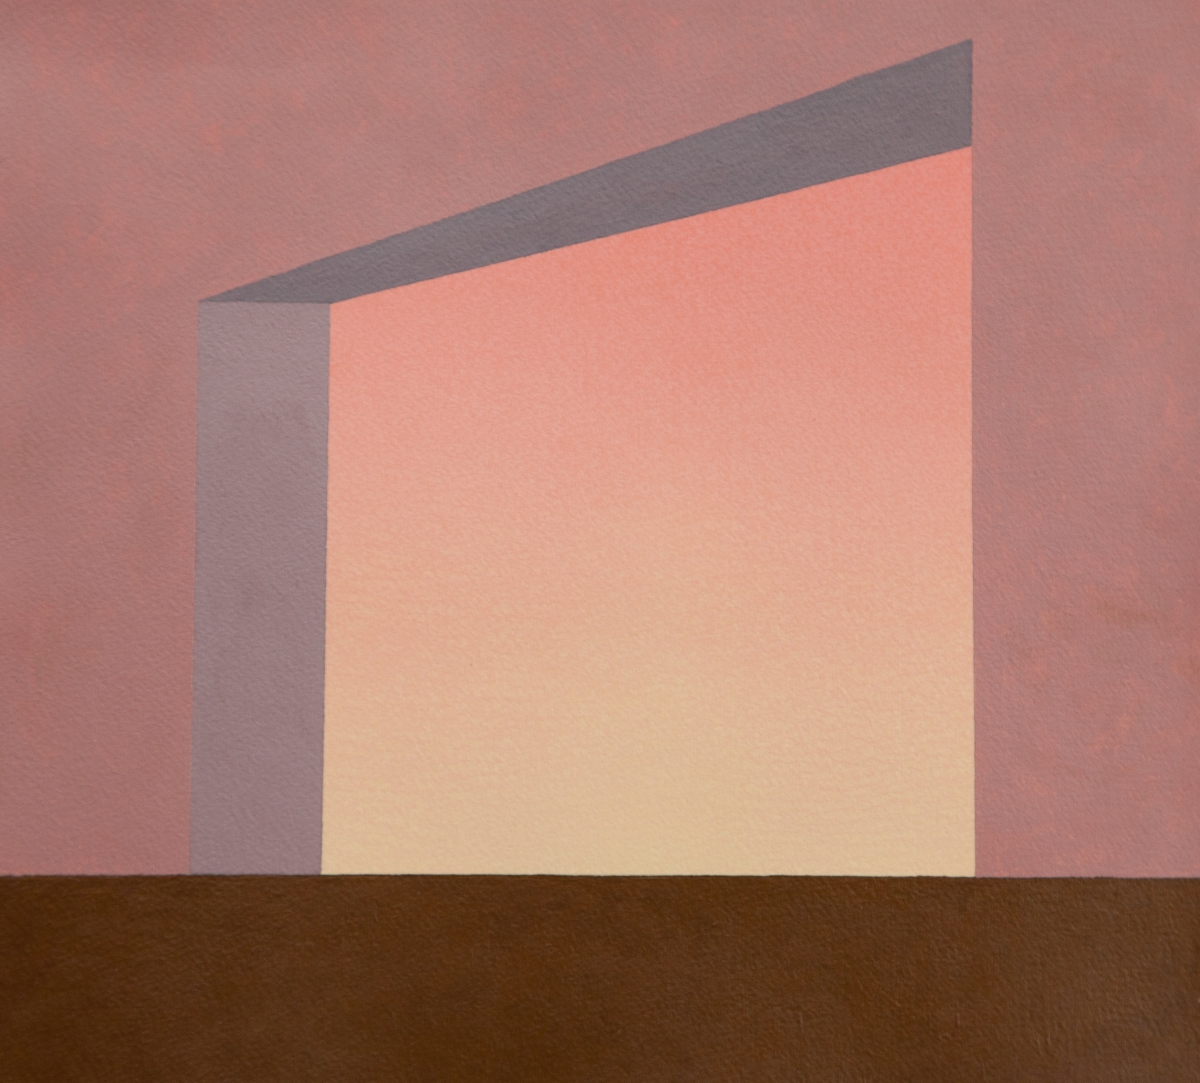 Brando White , Untitled (gradient portal) , 2015